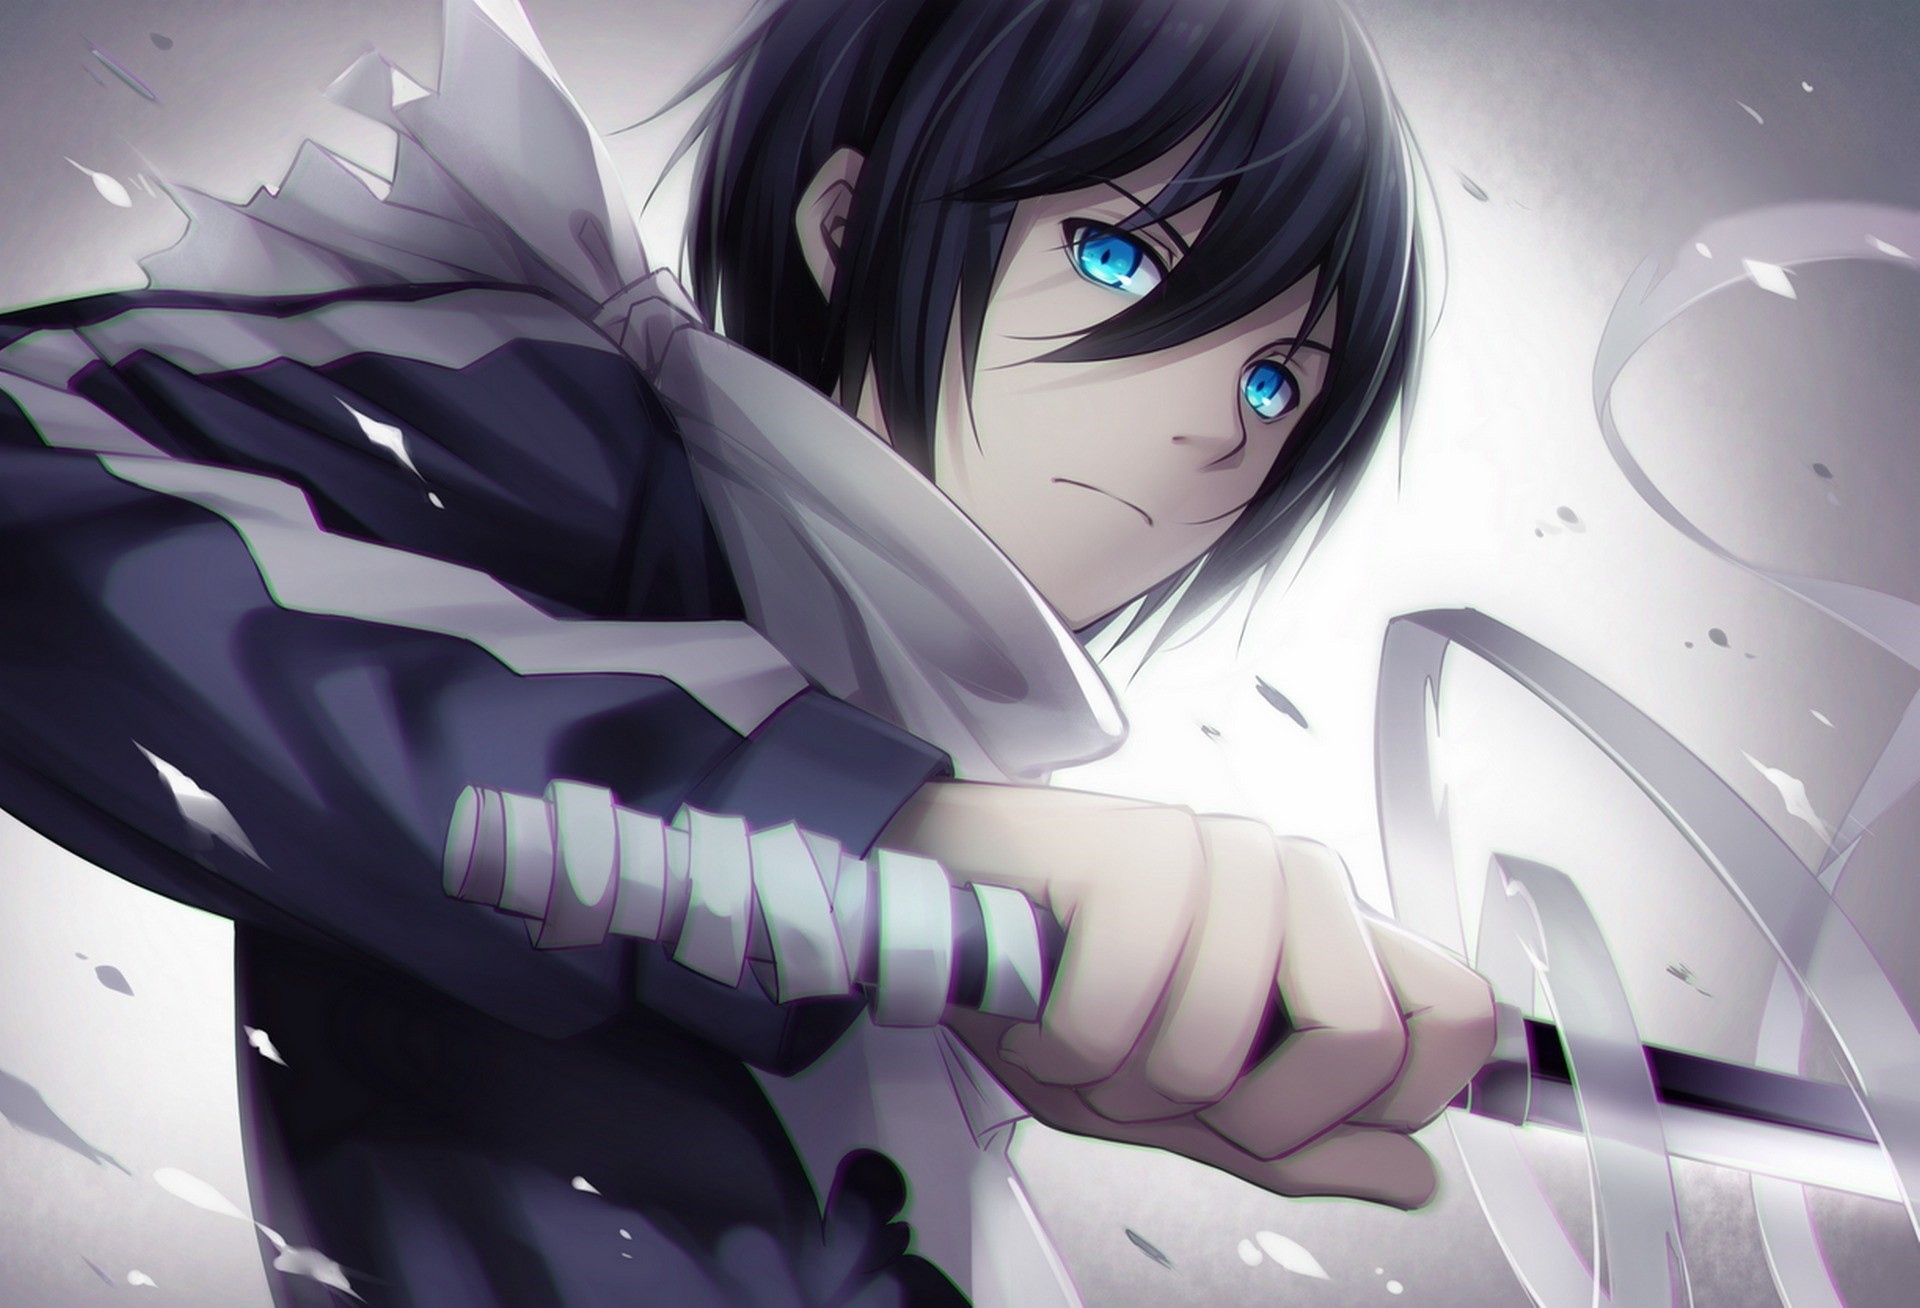 … Today Wallpaper Download picture parts of Home Anime Anime Handsome  Cute Boy Desktop Background Hd Wallpapers